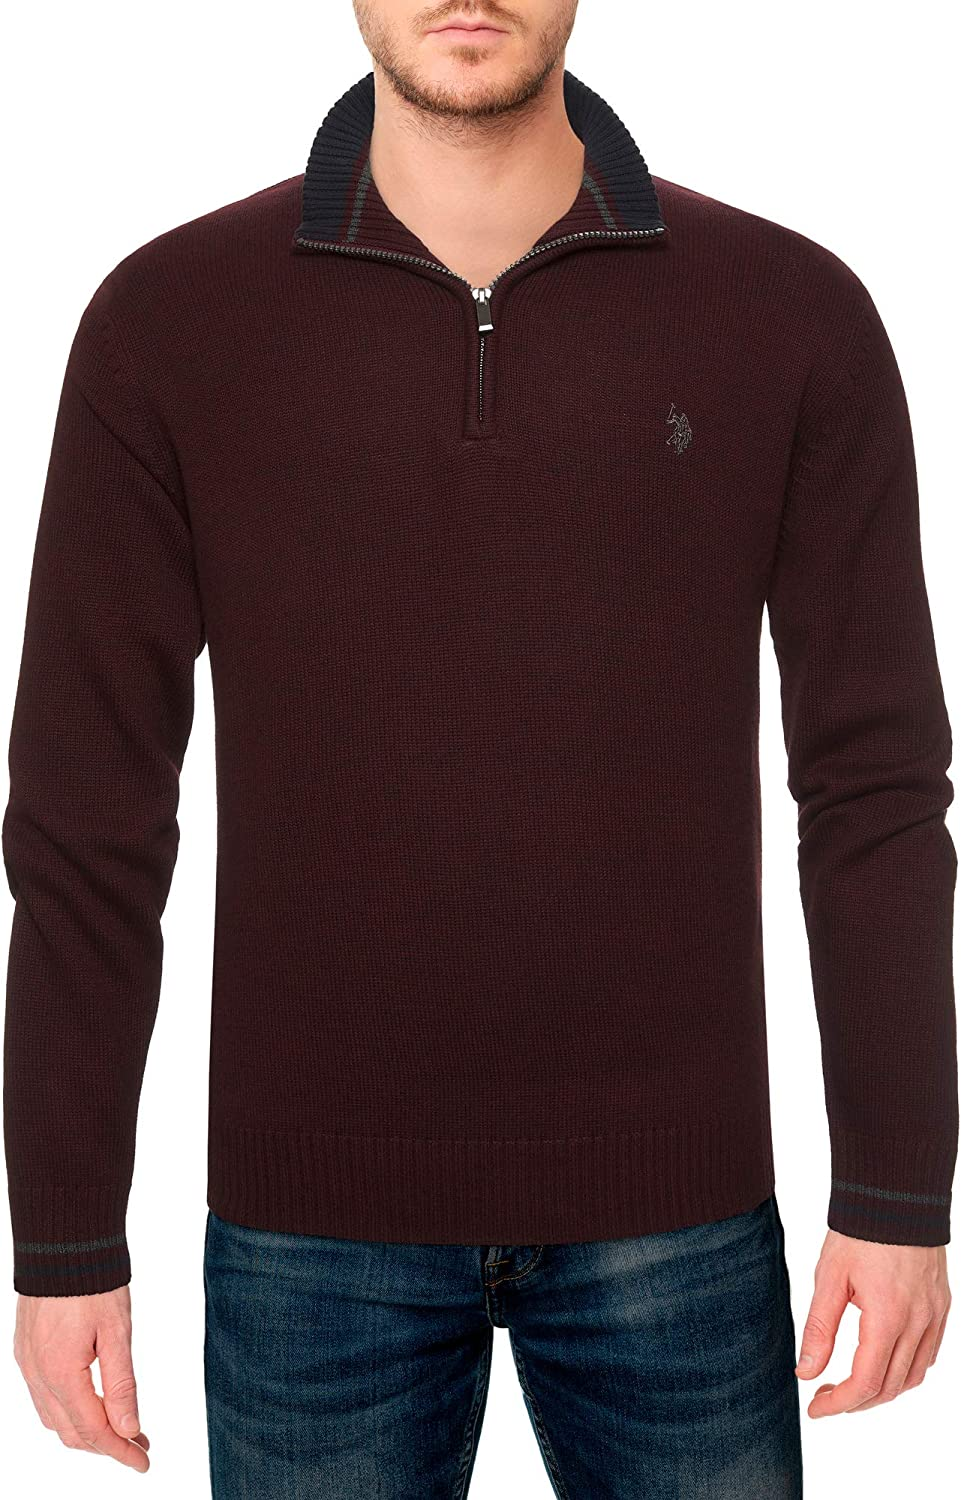 Mens Texture Fine Stripe Full Zip Sweater Sweater U.S Polo Assn